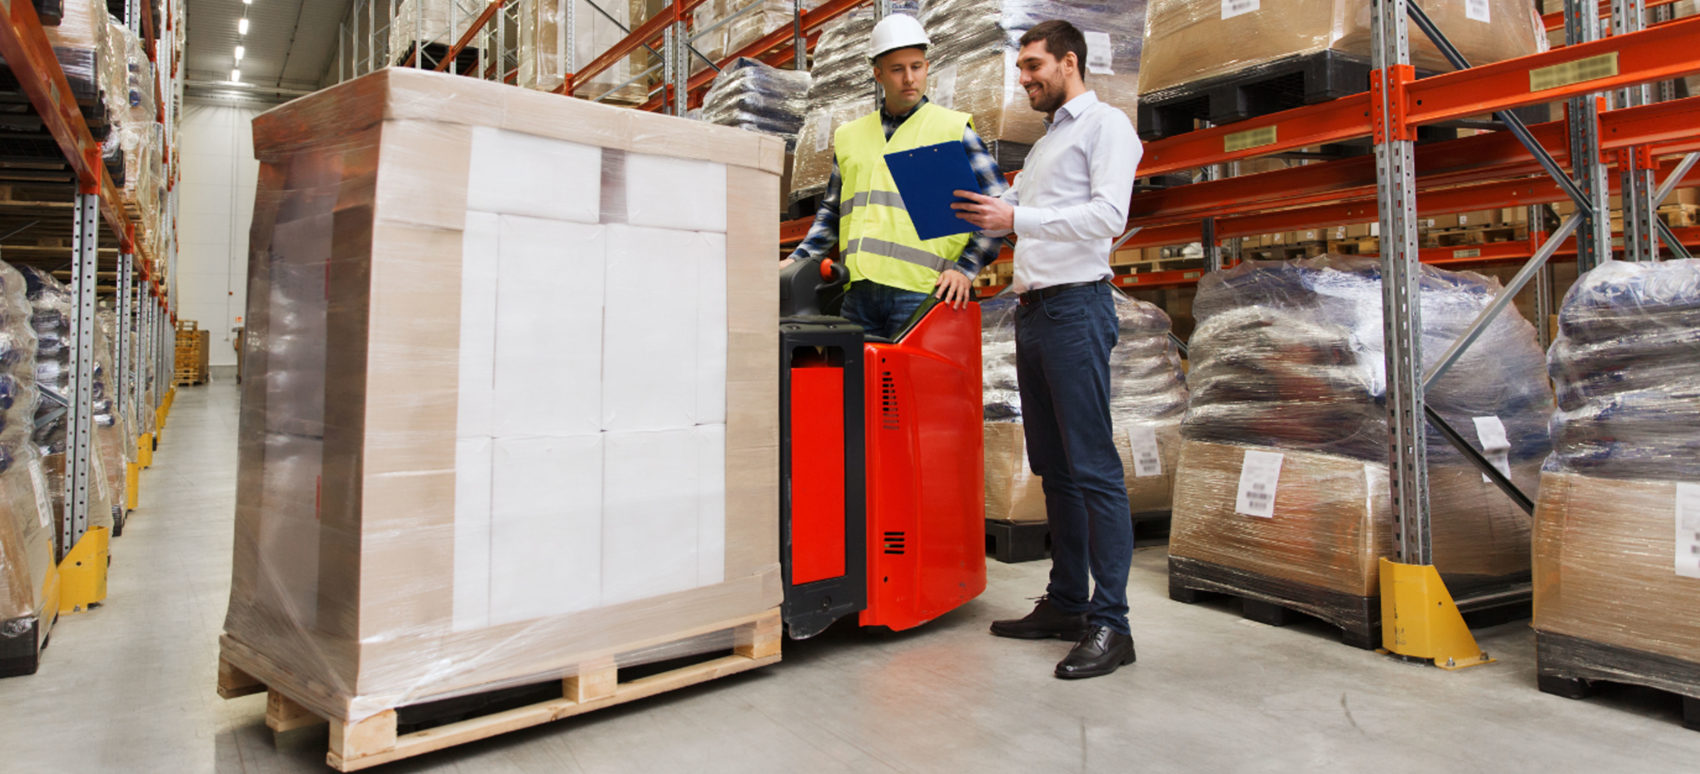 Logistics and Supply Chain Management: January Start